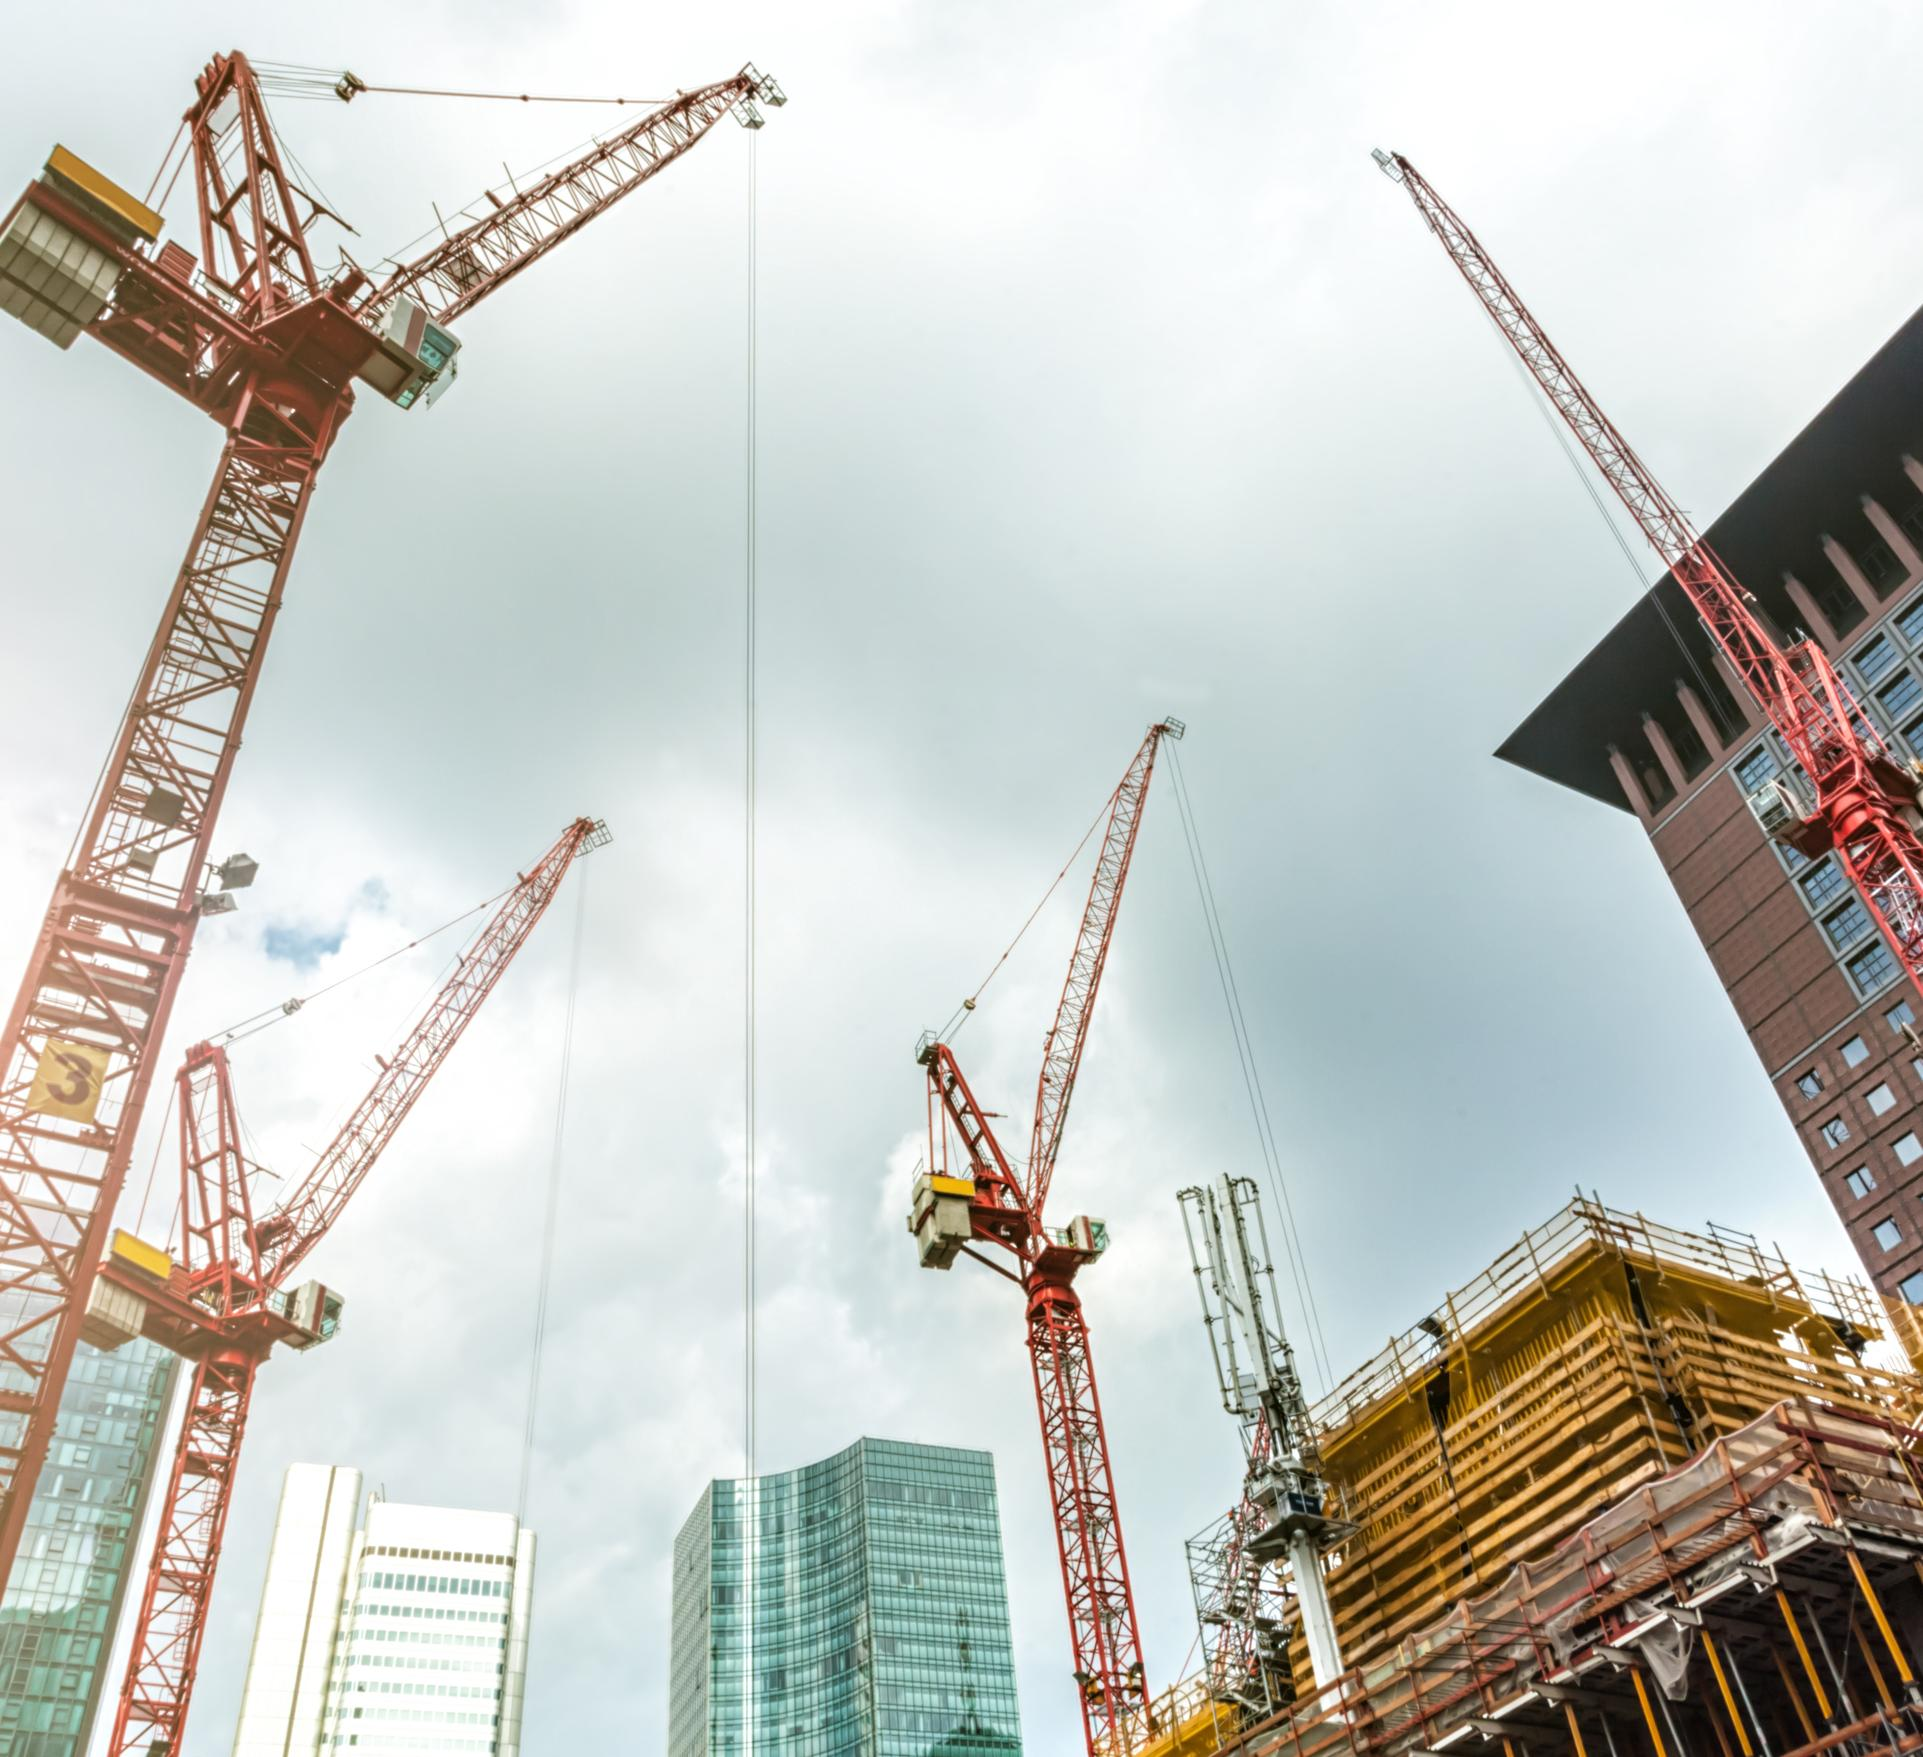 Rent, Lease or Buy: The Construction Firm's Dilemma